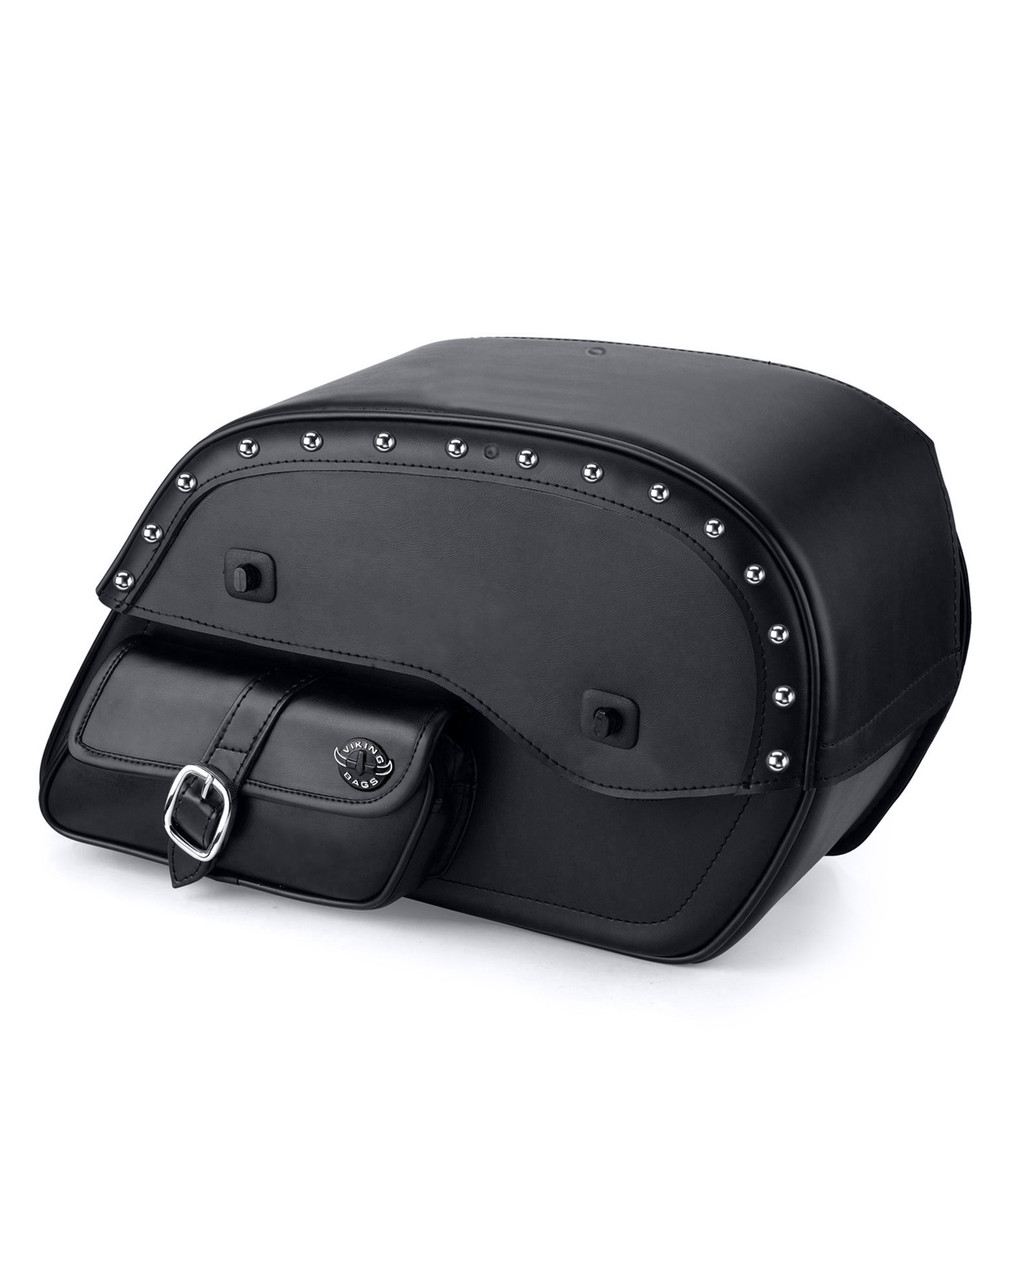 Indian Chief Standard Side Pocket Studded Large Motorcycle Saddlebags Main Bag View